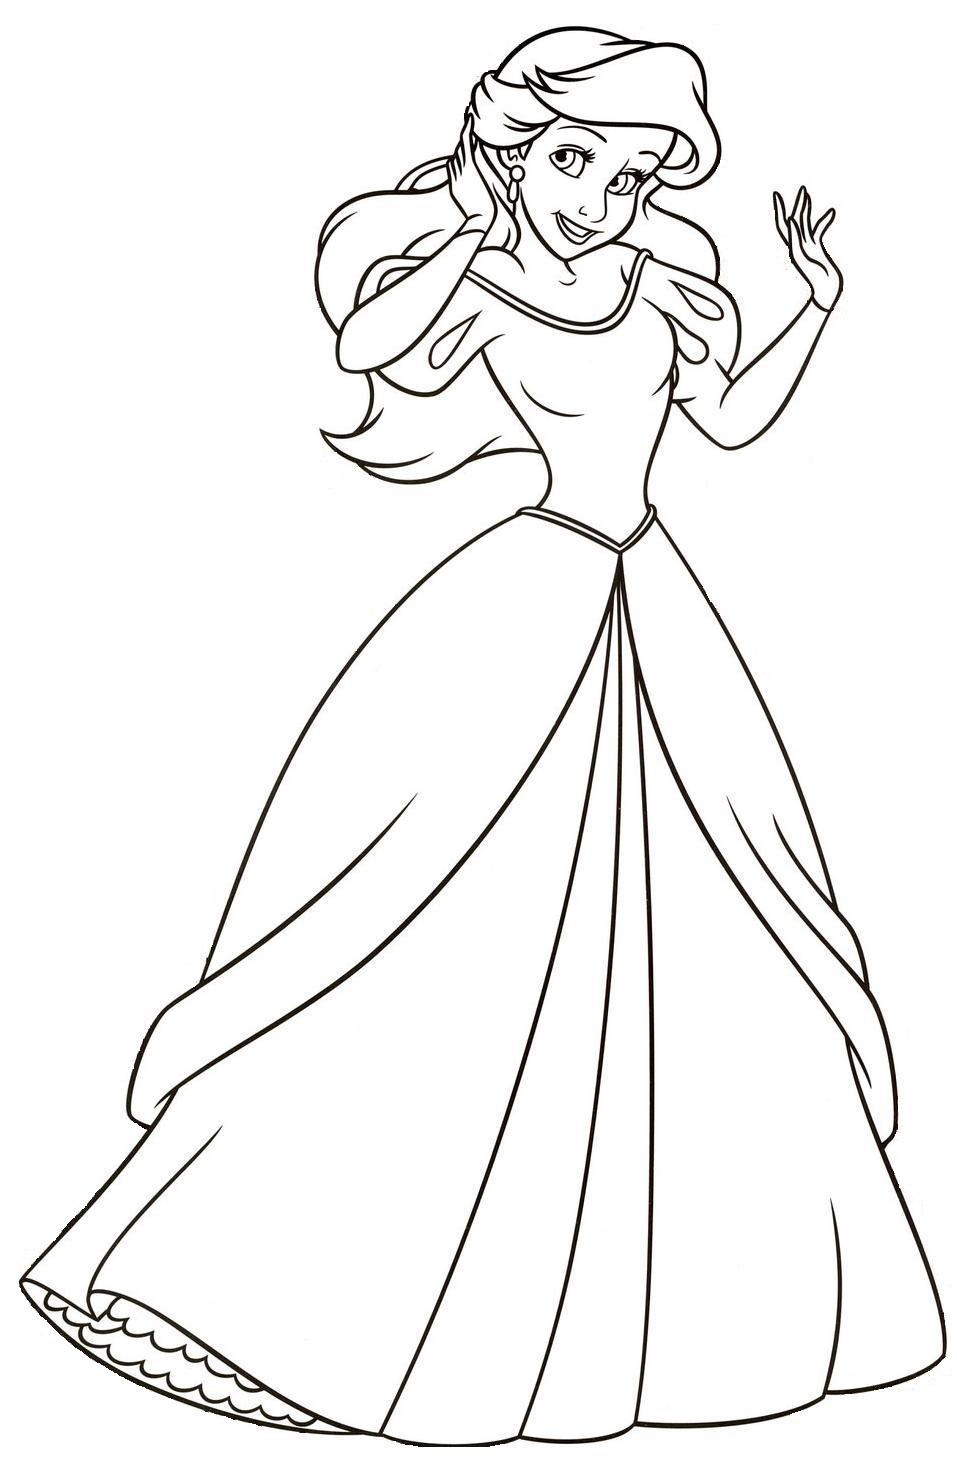 Princesa Ariel Para Colorear Sketch Coloring Page